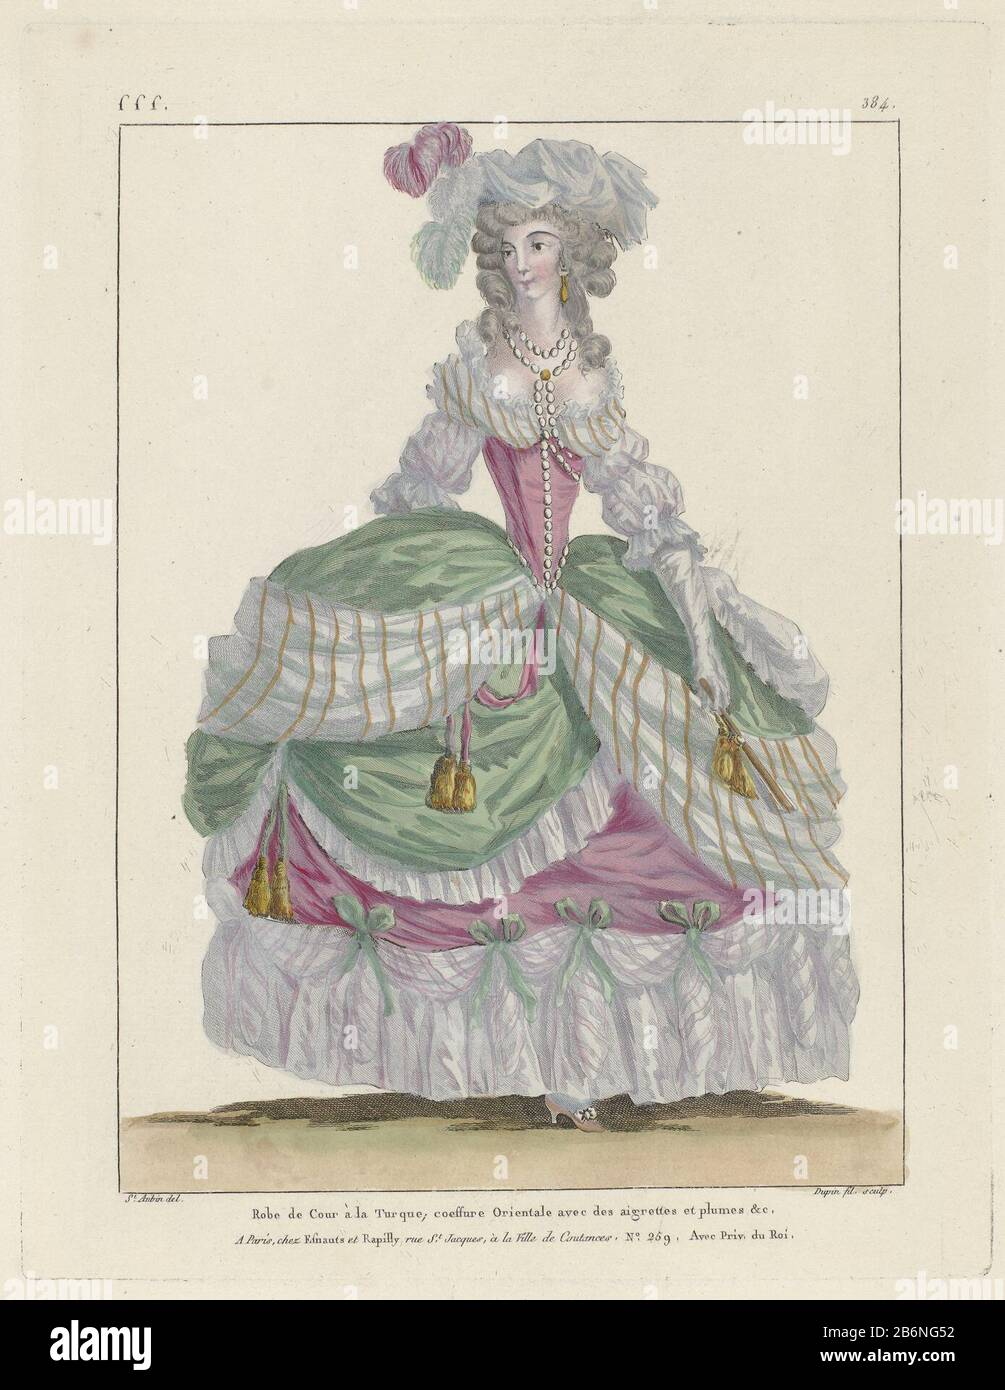 Woman In A Hofjapon A La Turque The Dress Is Decorated With Ribbons And Tassels Draping Of Striped Fabric Trimmed With Bows And Wrinkled Strips Of Fabric Coeffure Orientale Adorned With Feathers